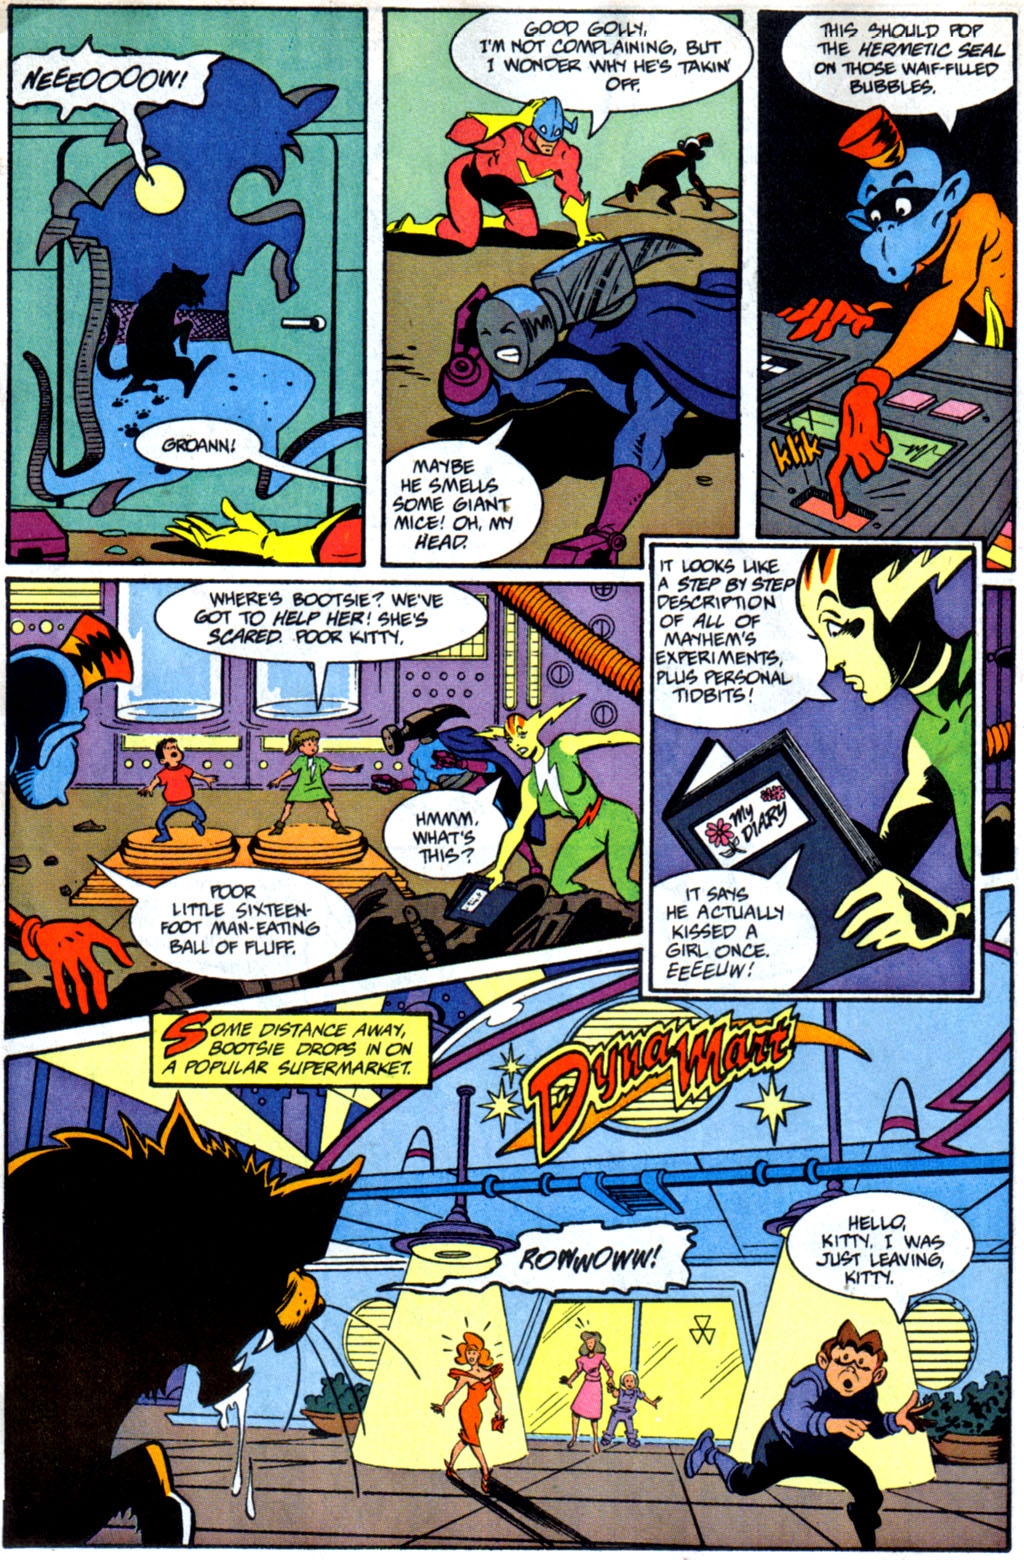 Read online Defenders of Dynatron City comic -  Issue #1 - 13